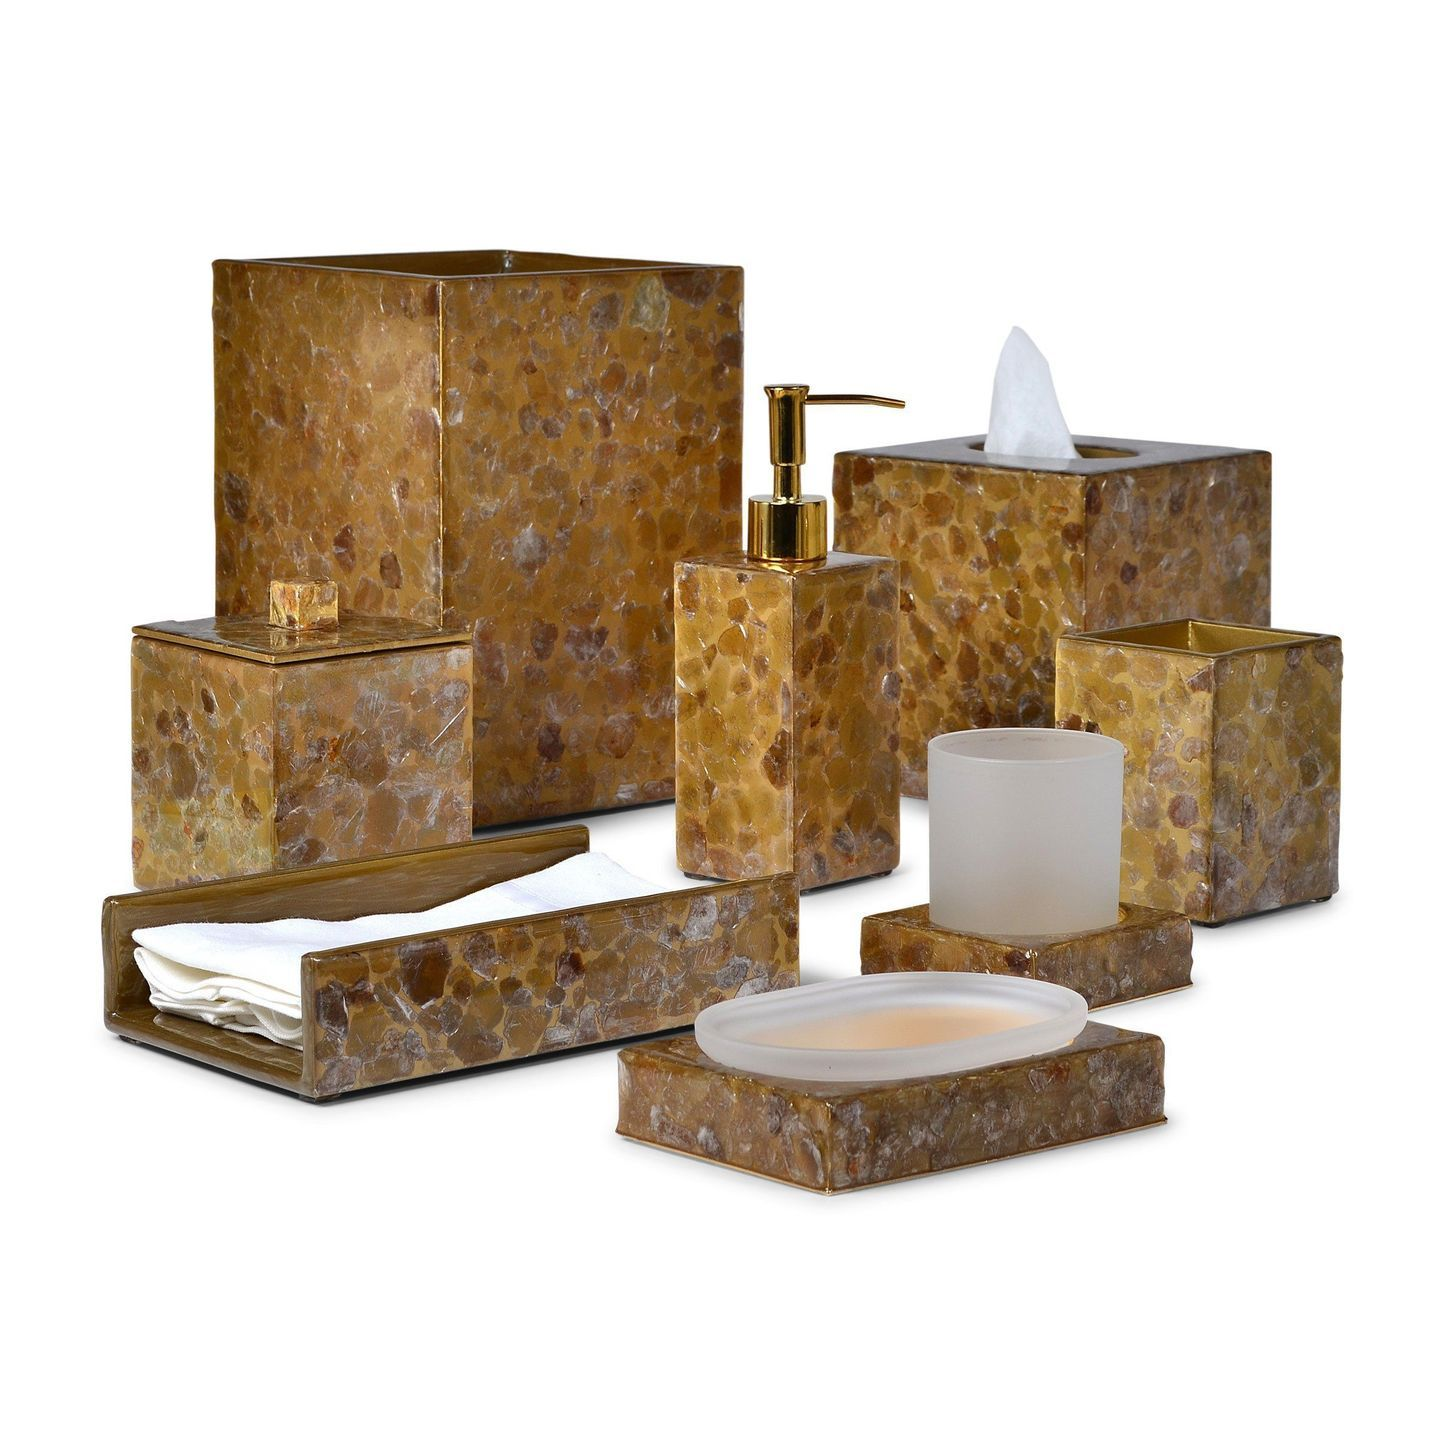 Mica Gold Bath Accessories by Mike + Ally